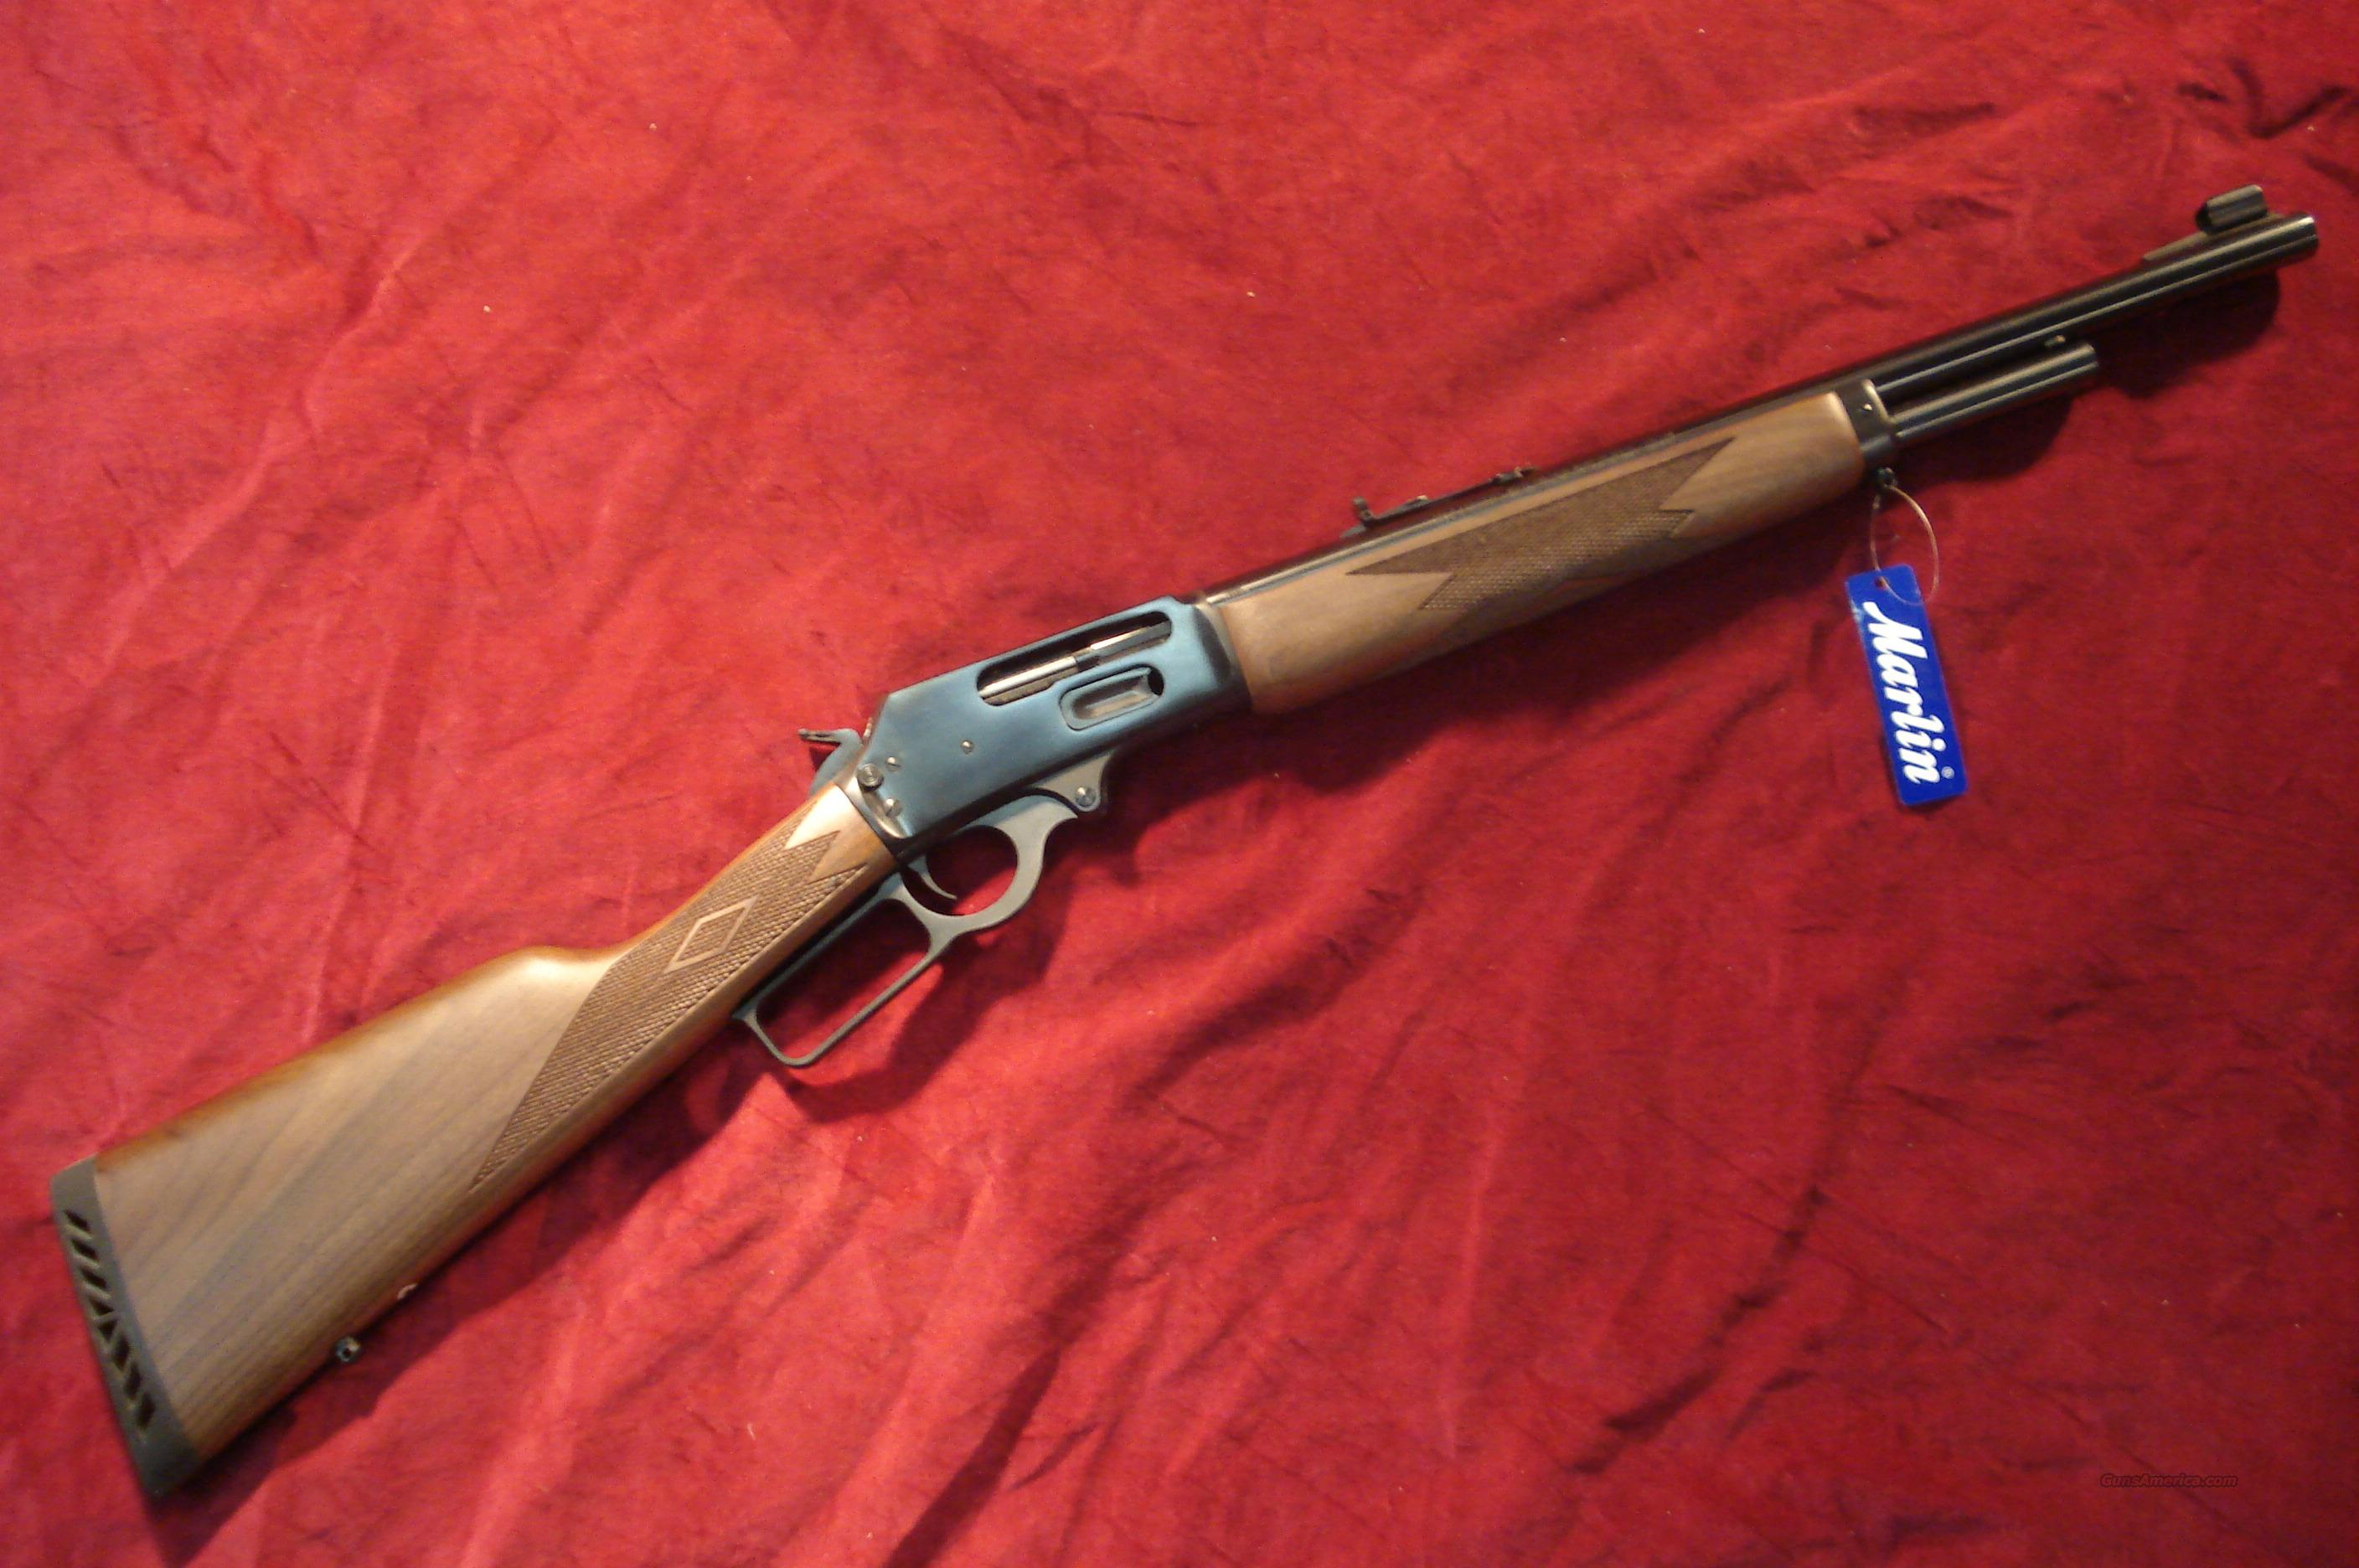 MARLIN 1895 GUIDE GUN 45/70 GOV'T BLUE NEW (1895G)  (70462)  Guns > Rifles > Marlin Rifles > Modern > Lever Action